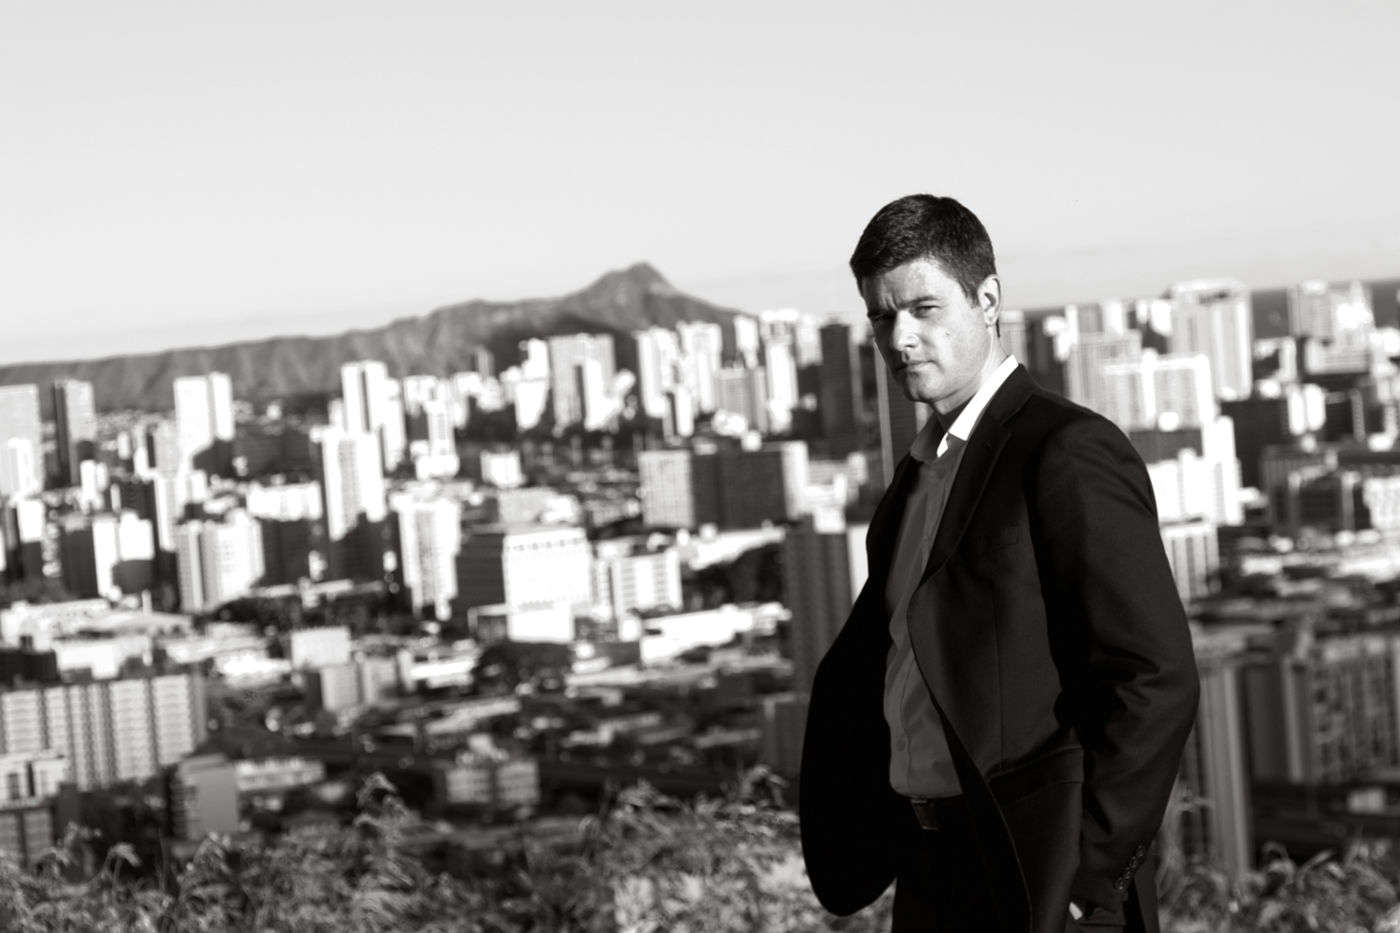 Portrait Handsome Blackandwhite Suit Diamondhead People And Places The Color Of Business